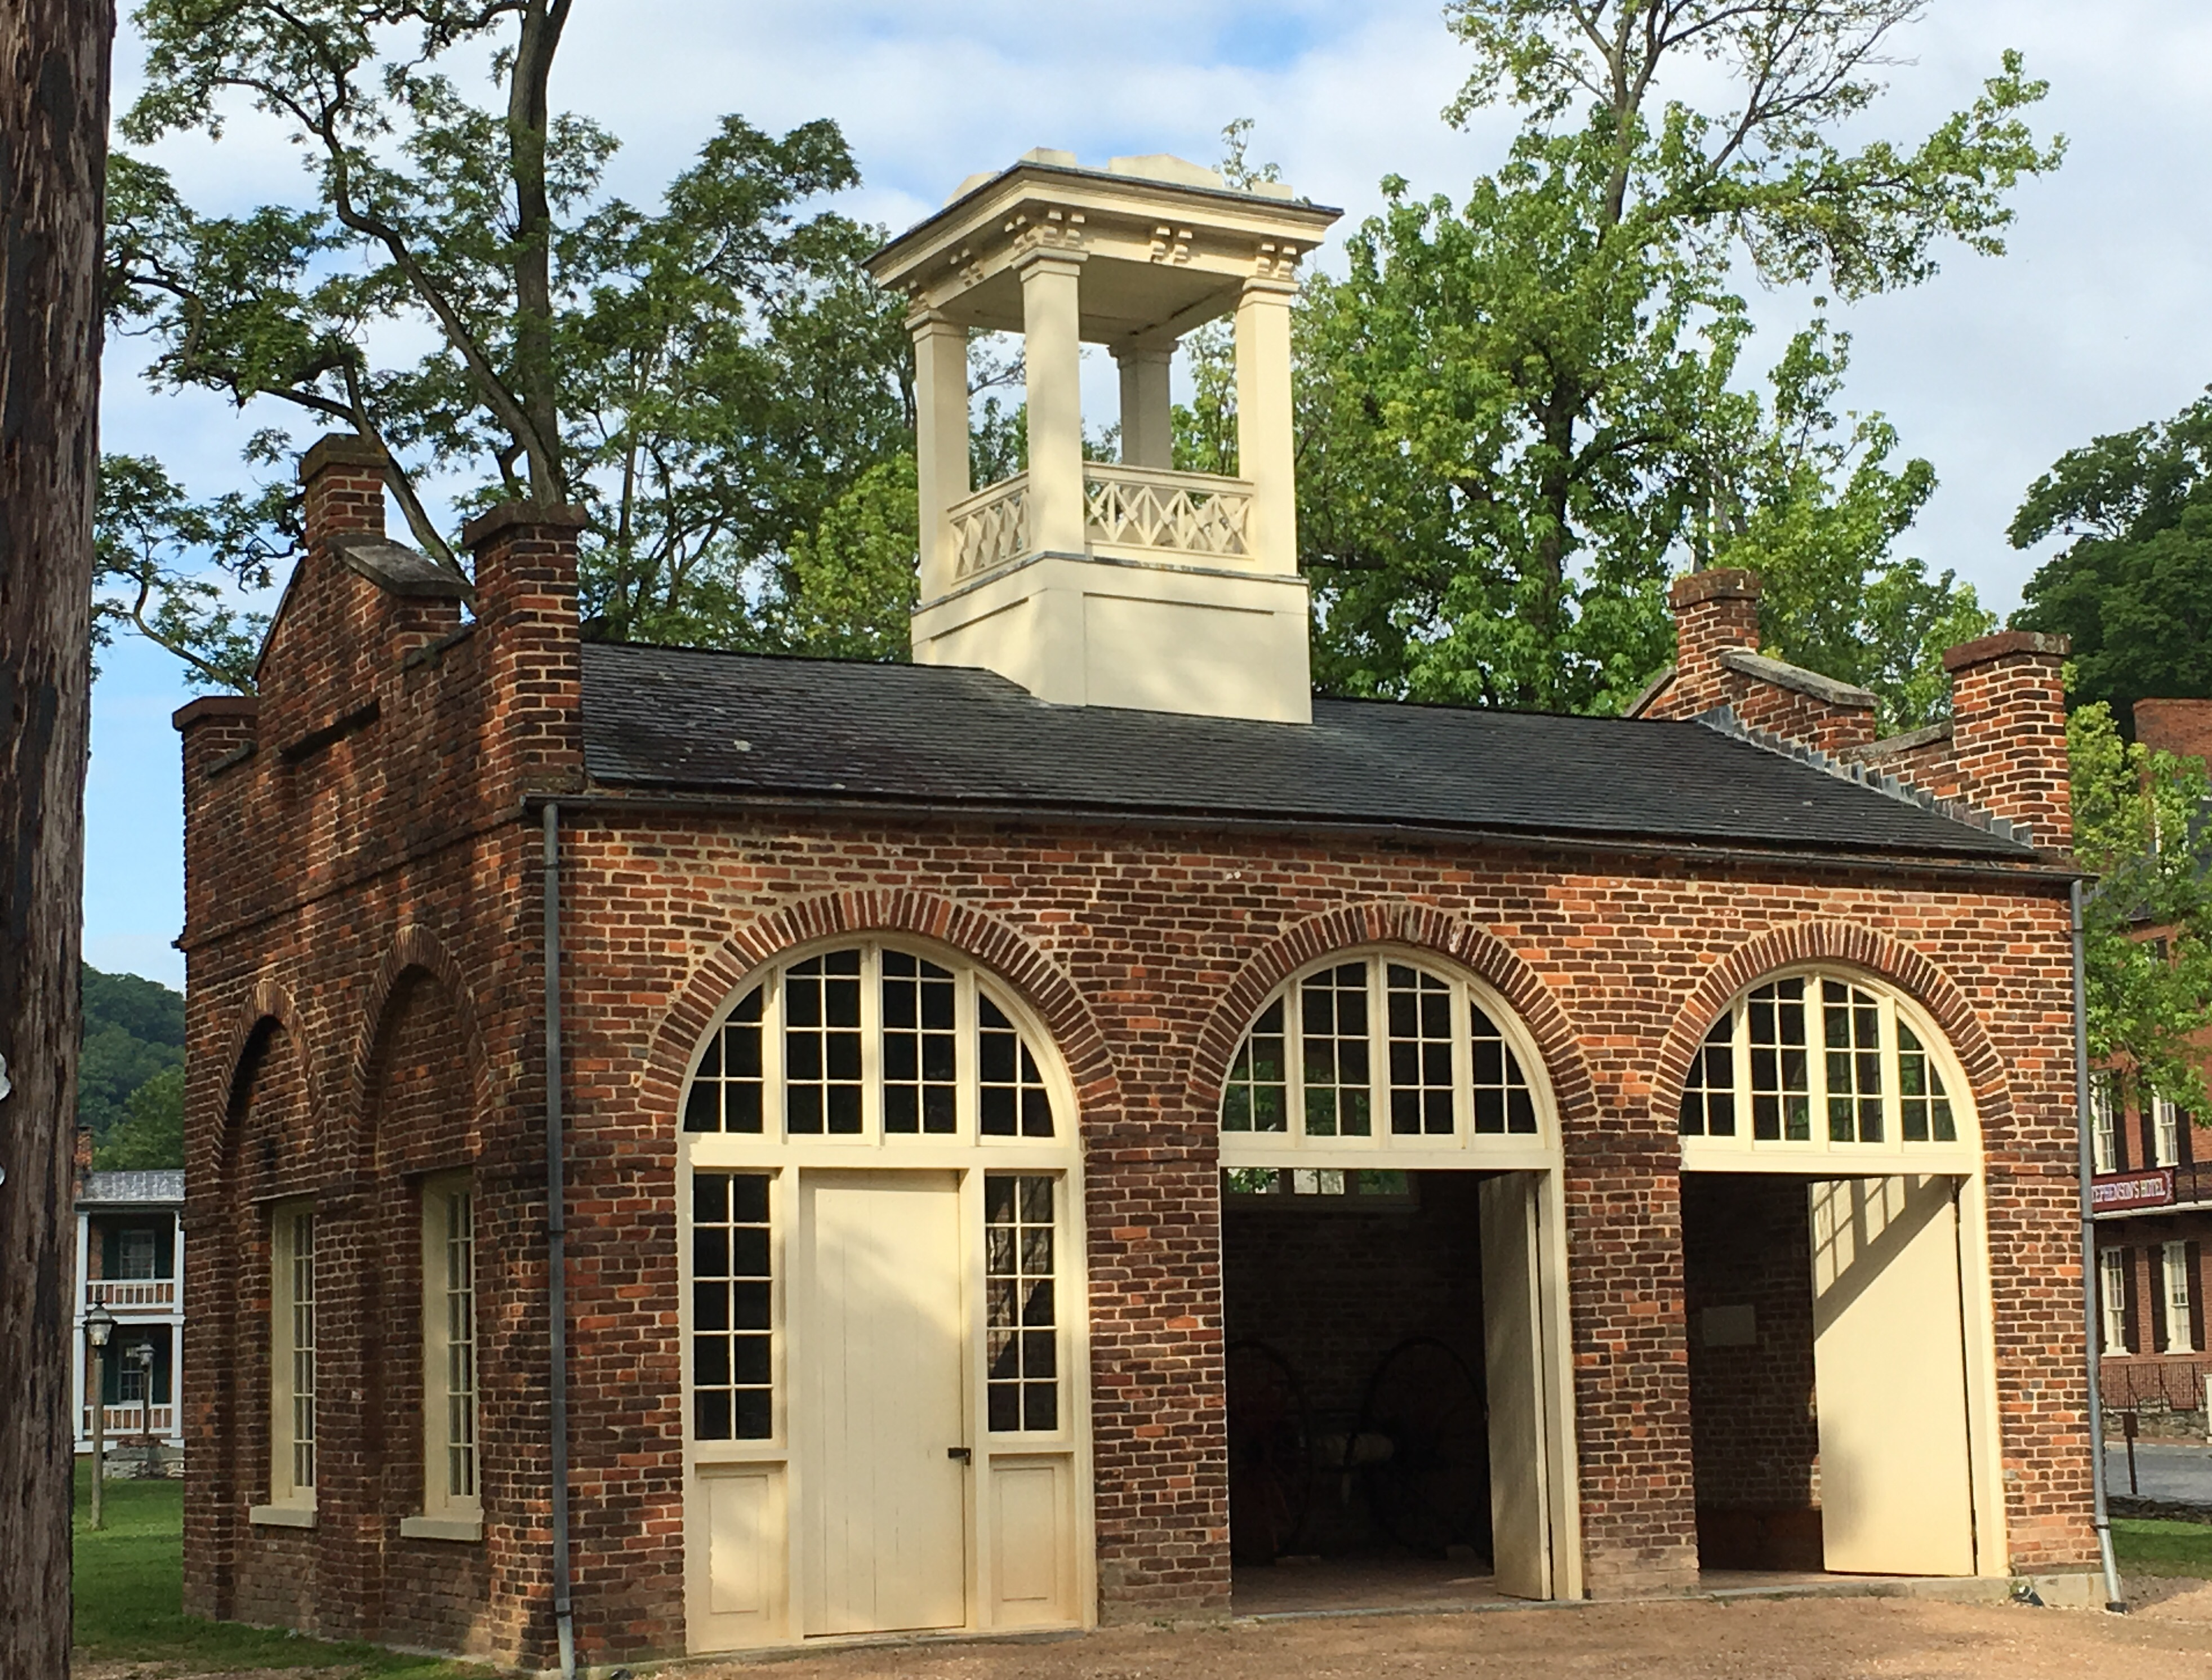 The armory's engine house, known as John Brown's Fort, today stands in Arsenal Square 150 feet south of the John Brown Monument. Image obtained from the National Park Service.